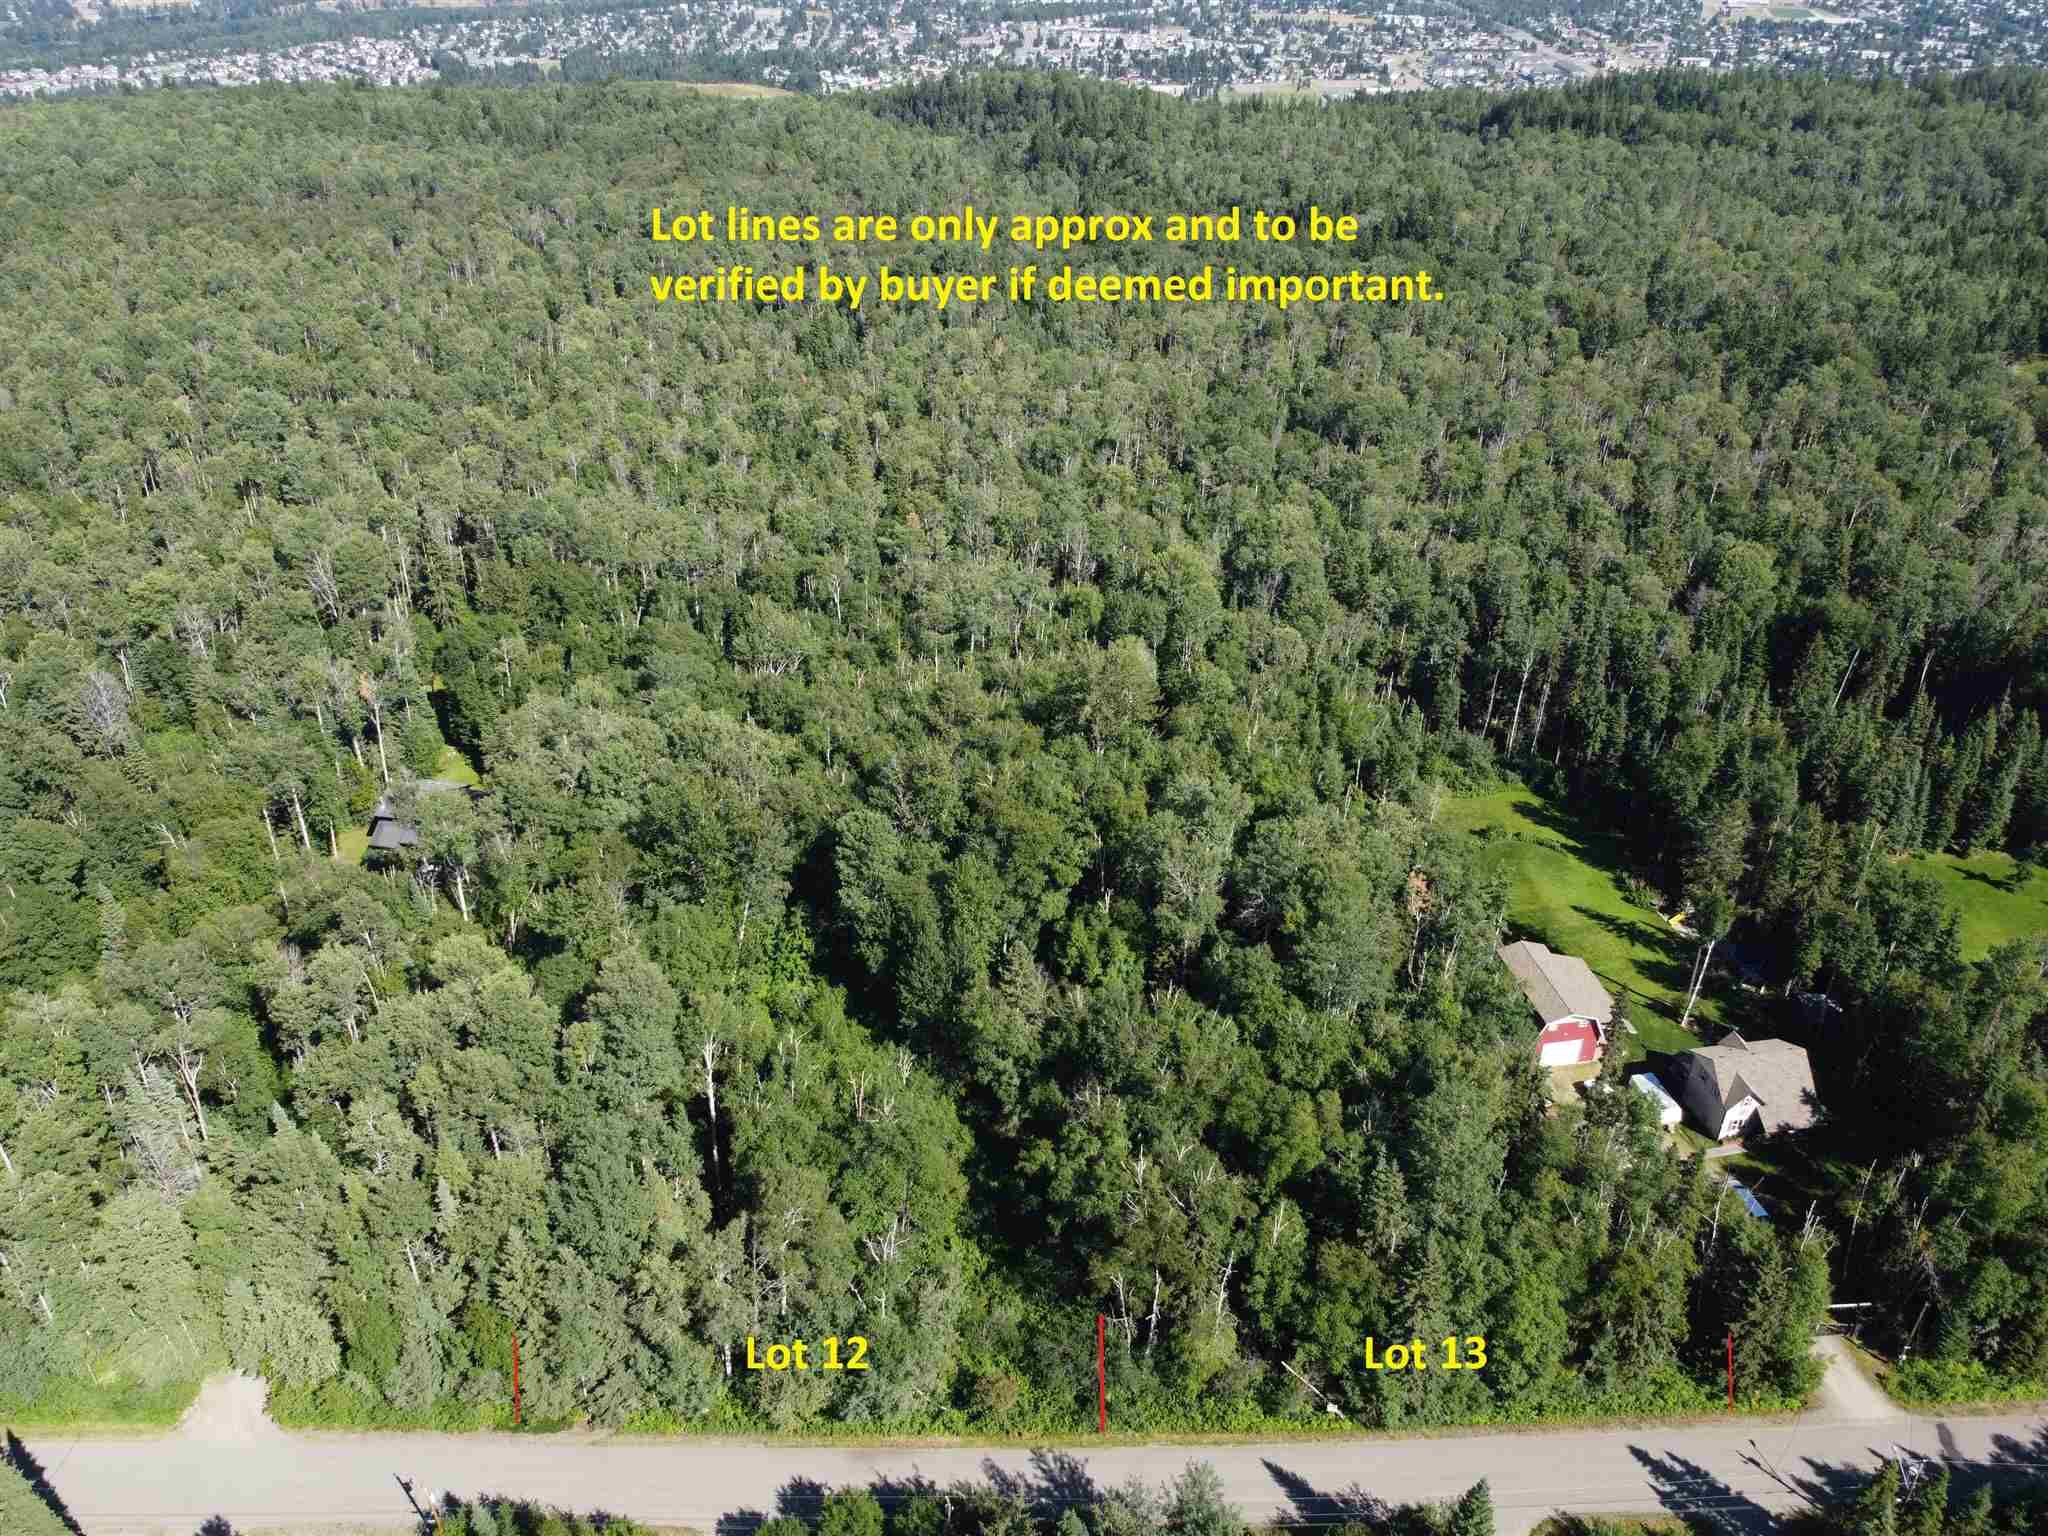 """Main Photo: 6332 CRANBROOK HILL Road in Prince George: Cranbrook Hill Land for sale in """"CRANBROOK HILL"""" (PG City West (Zone 71))  : MLS®# R2607378"""